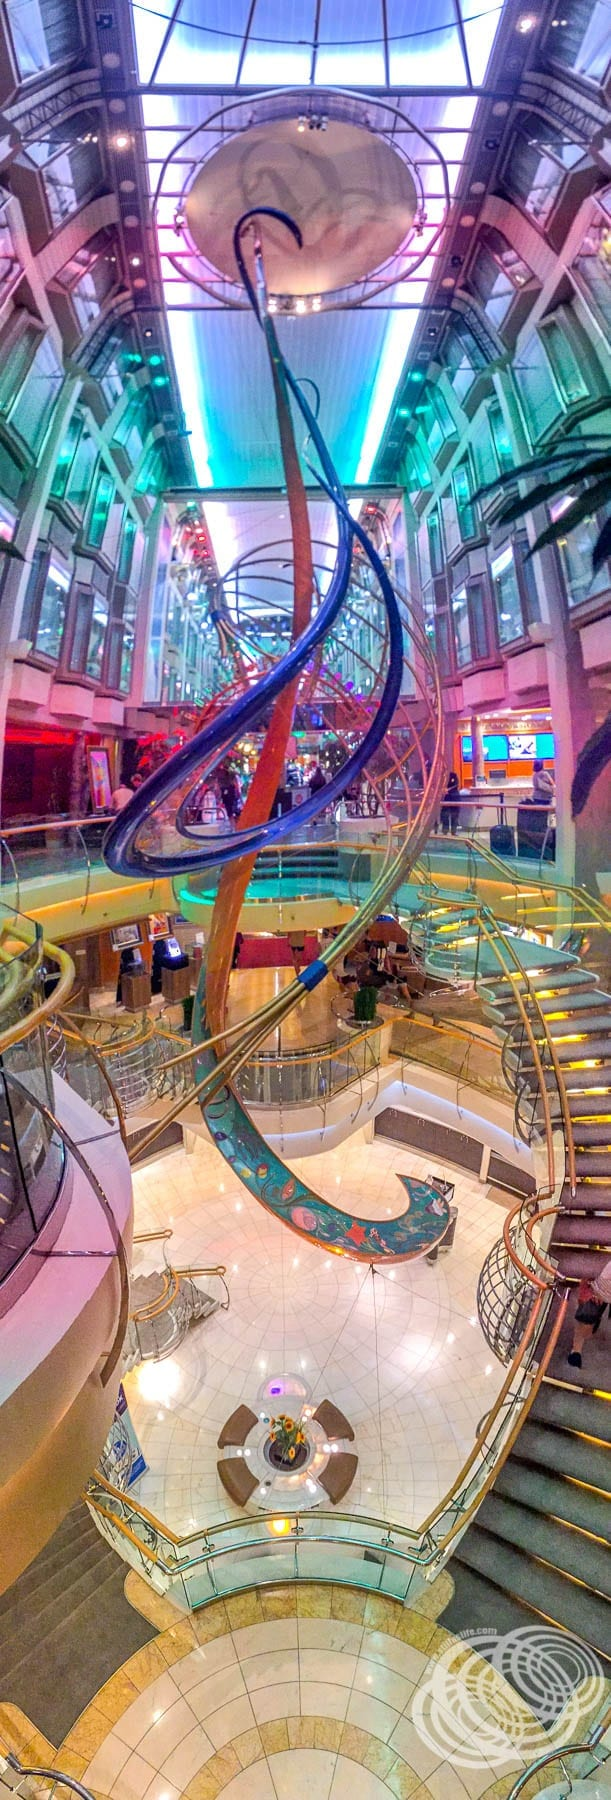 The Royal Promenade on Explorer of the Seas